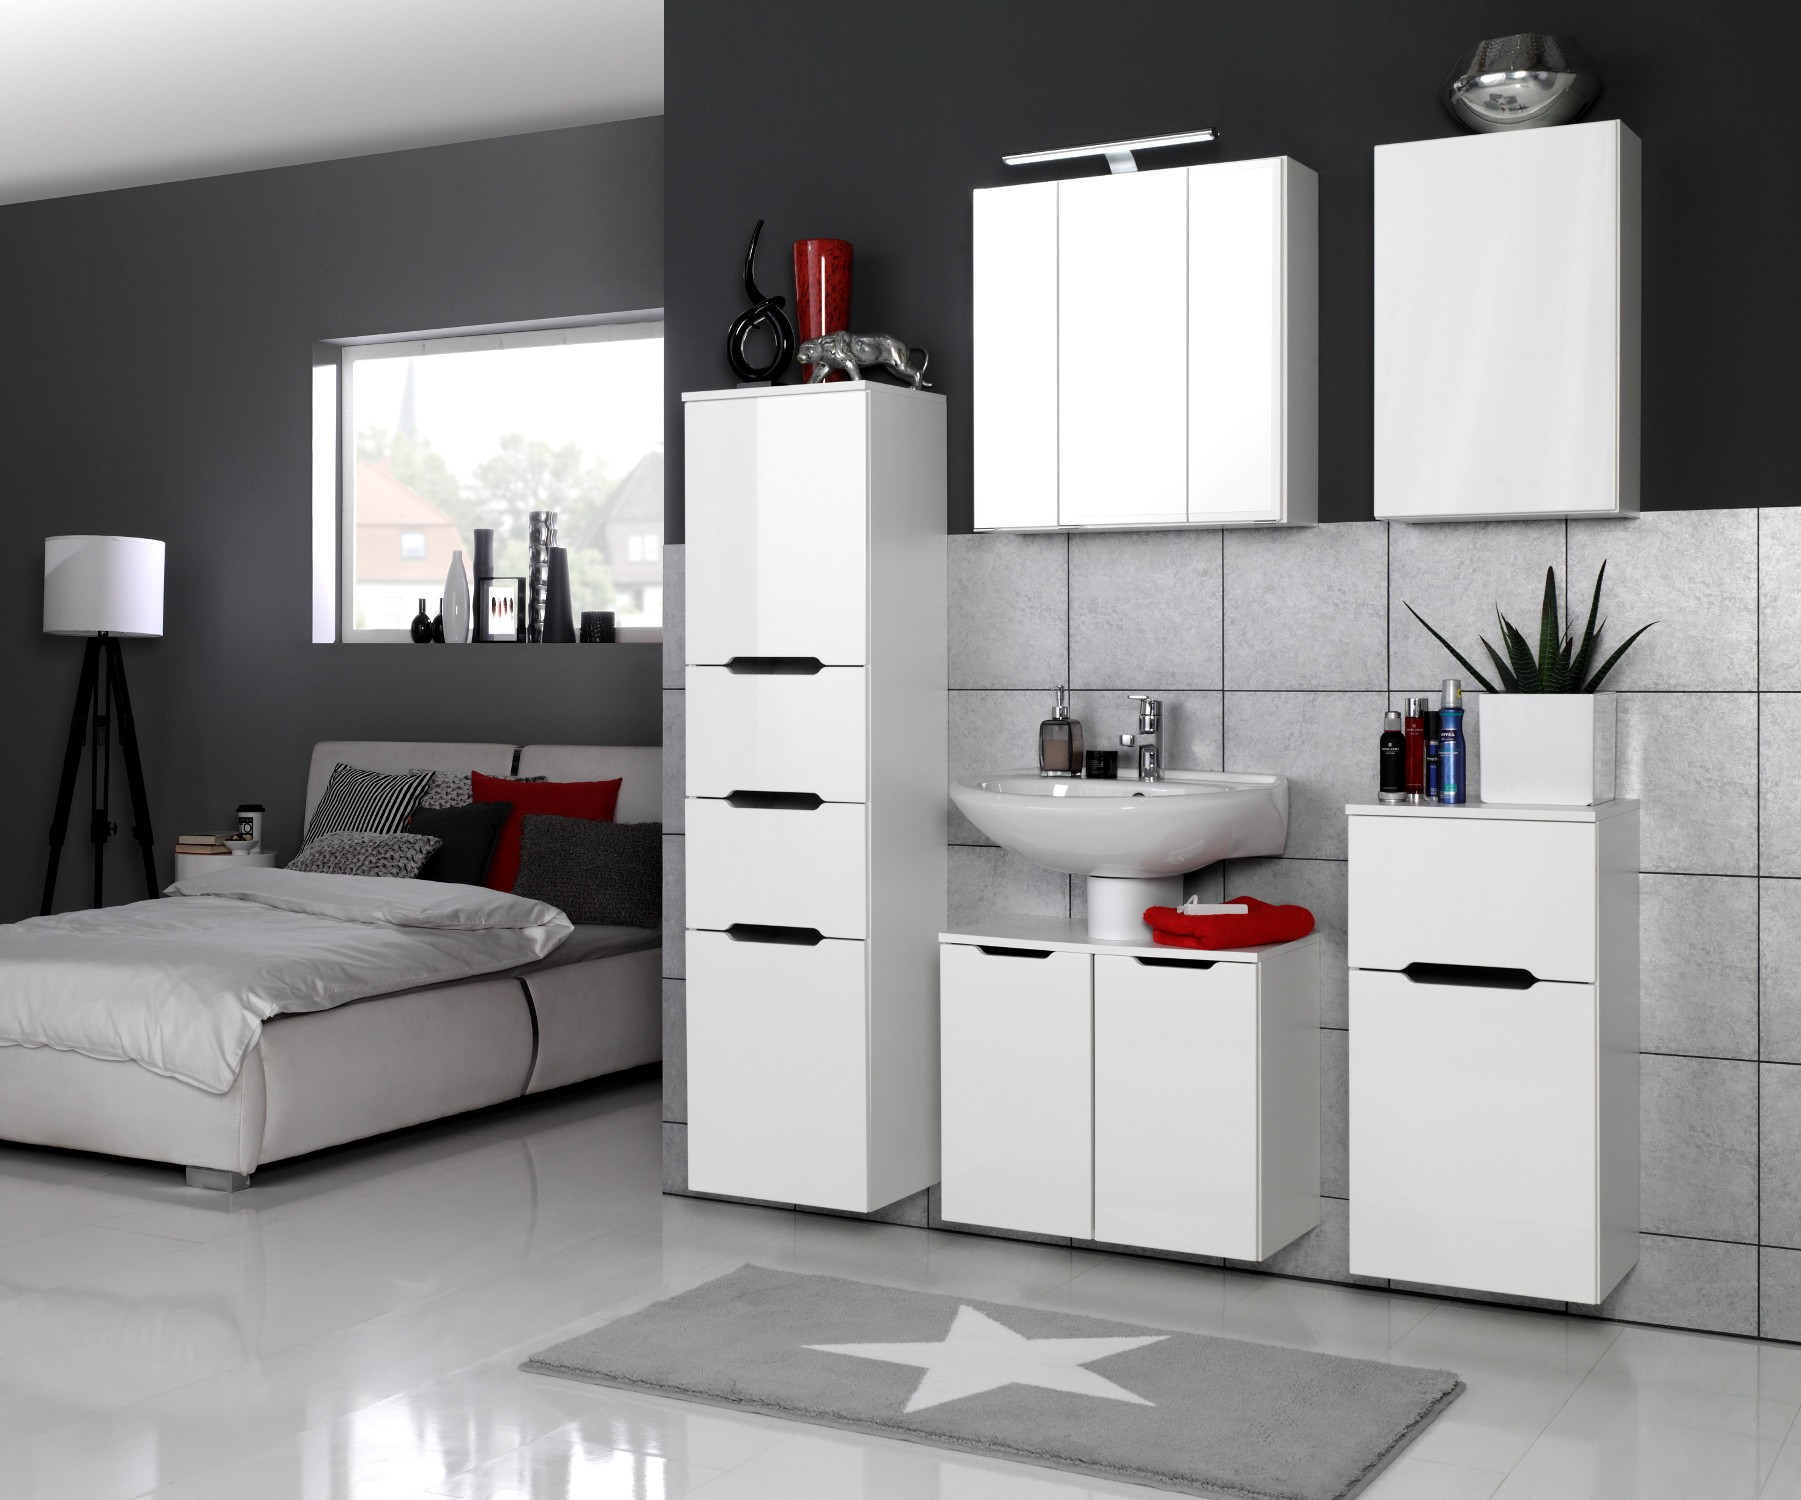 bad h ngeschrank belluno 1 t rig 40 cm breit hochglanz wei bad bad h ngeschr nke. Black Bedroom Furniture Sets. Home Design Ideas